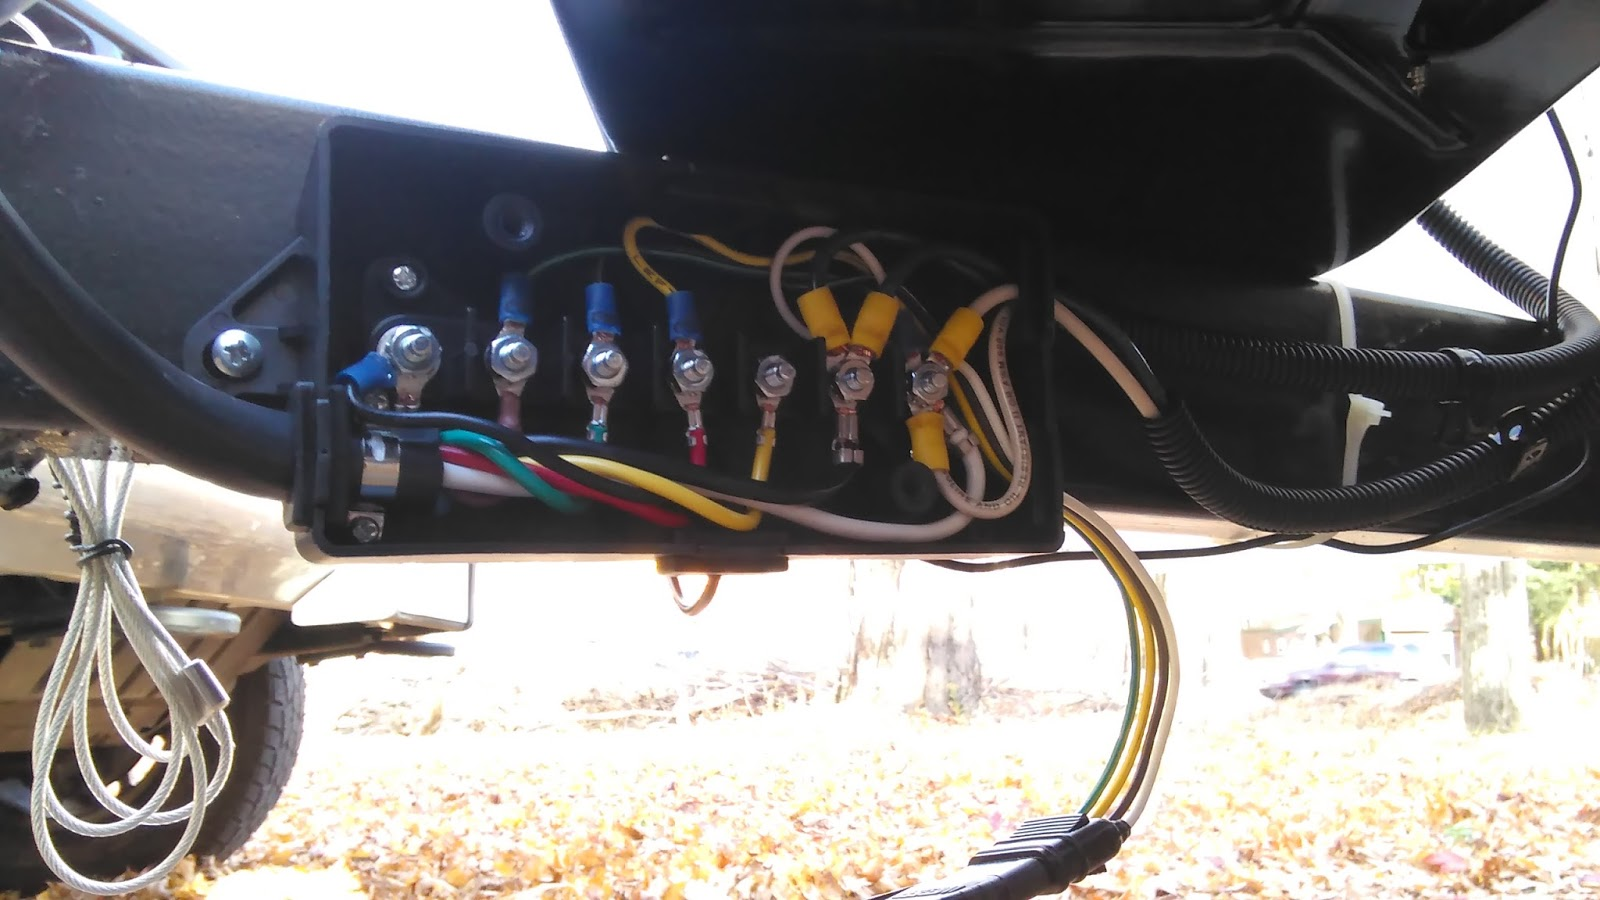 Rv Junction Box Wiring Diagram Schemes A Trailer 6x12 Cargo To Conversion Rh Ywhic Blogspot Com 7 Way